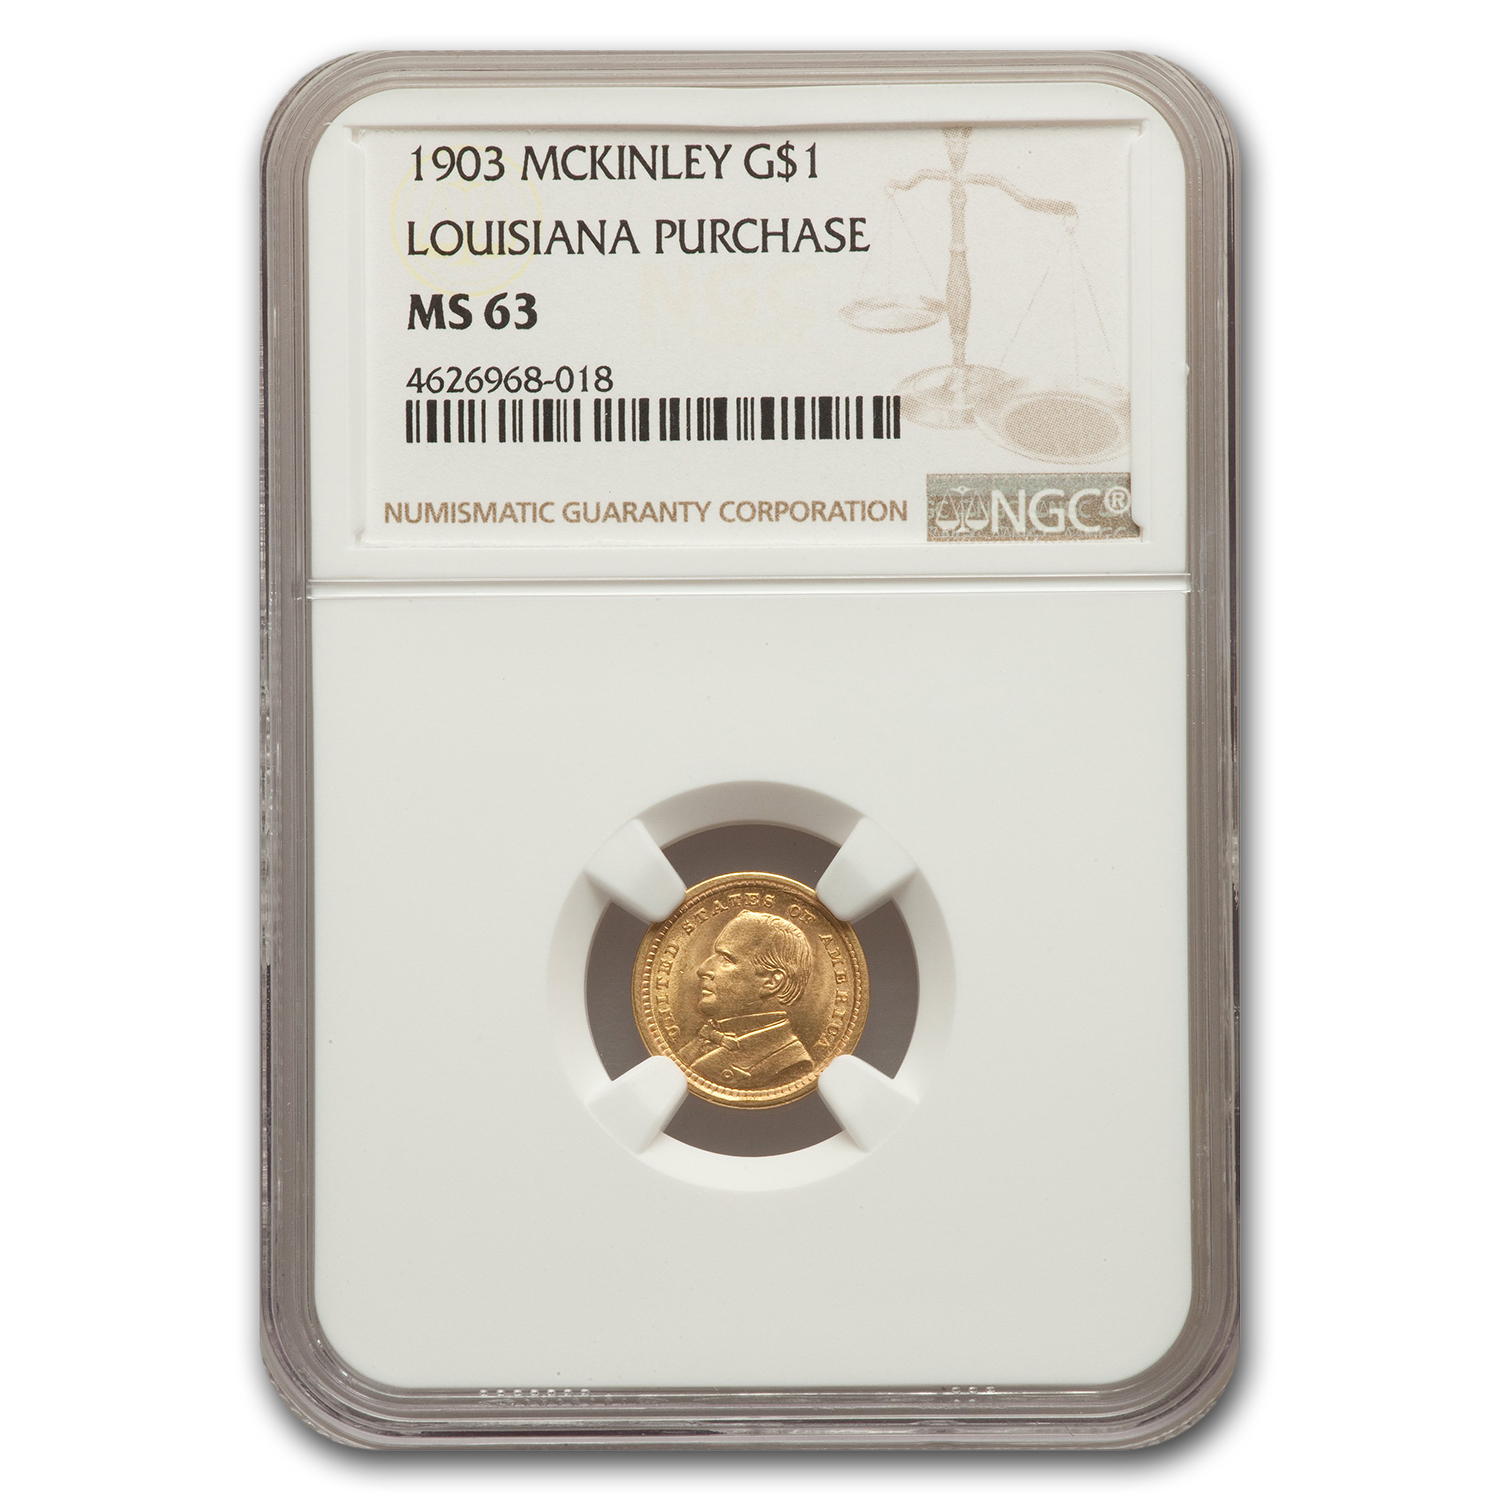 1903 Gold $1.00 Louisiana Purchase McKinley MS-63 NGC